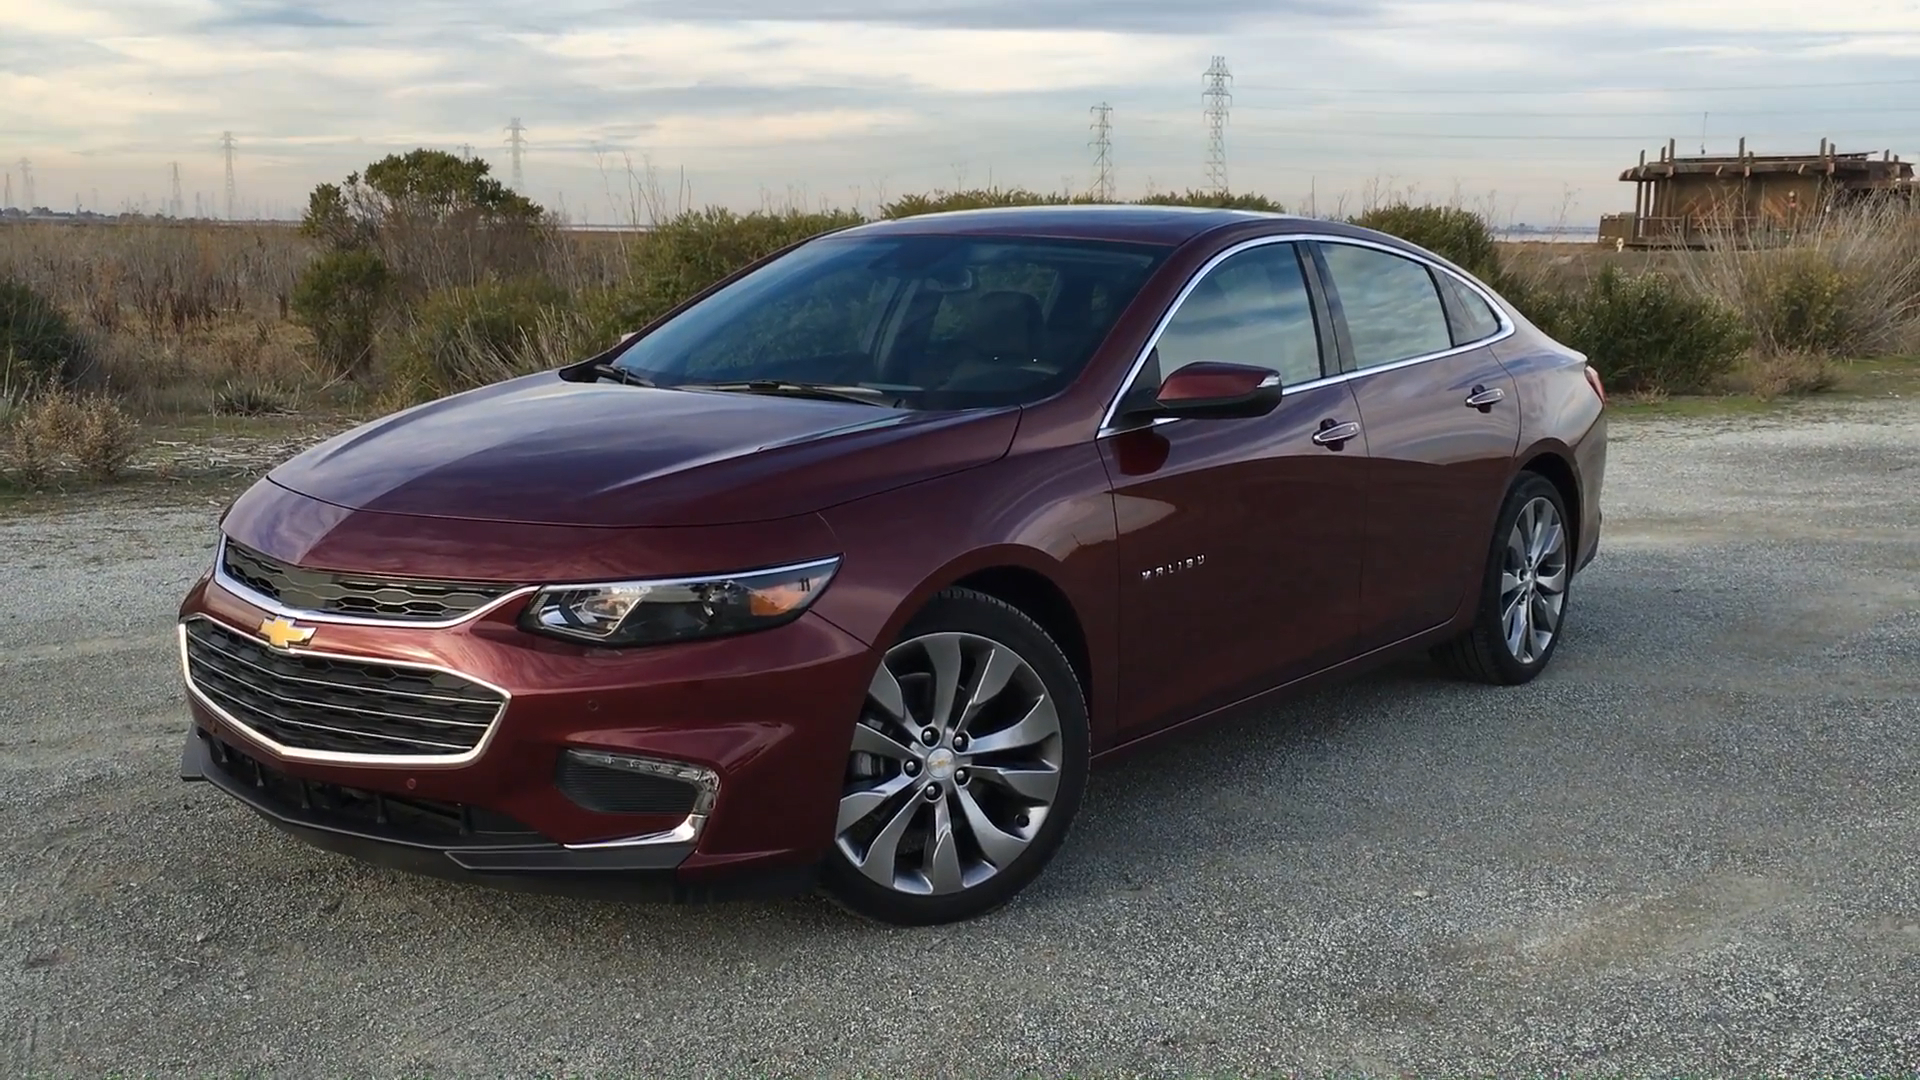 2019 Chevrolet Malibu Caught Hiding Its Facelift Autoblog